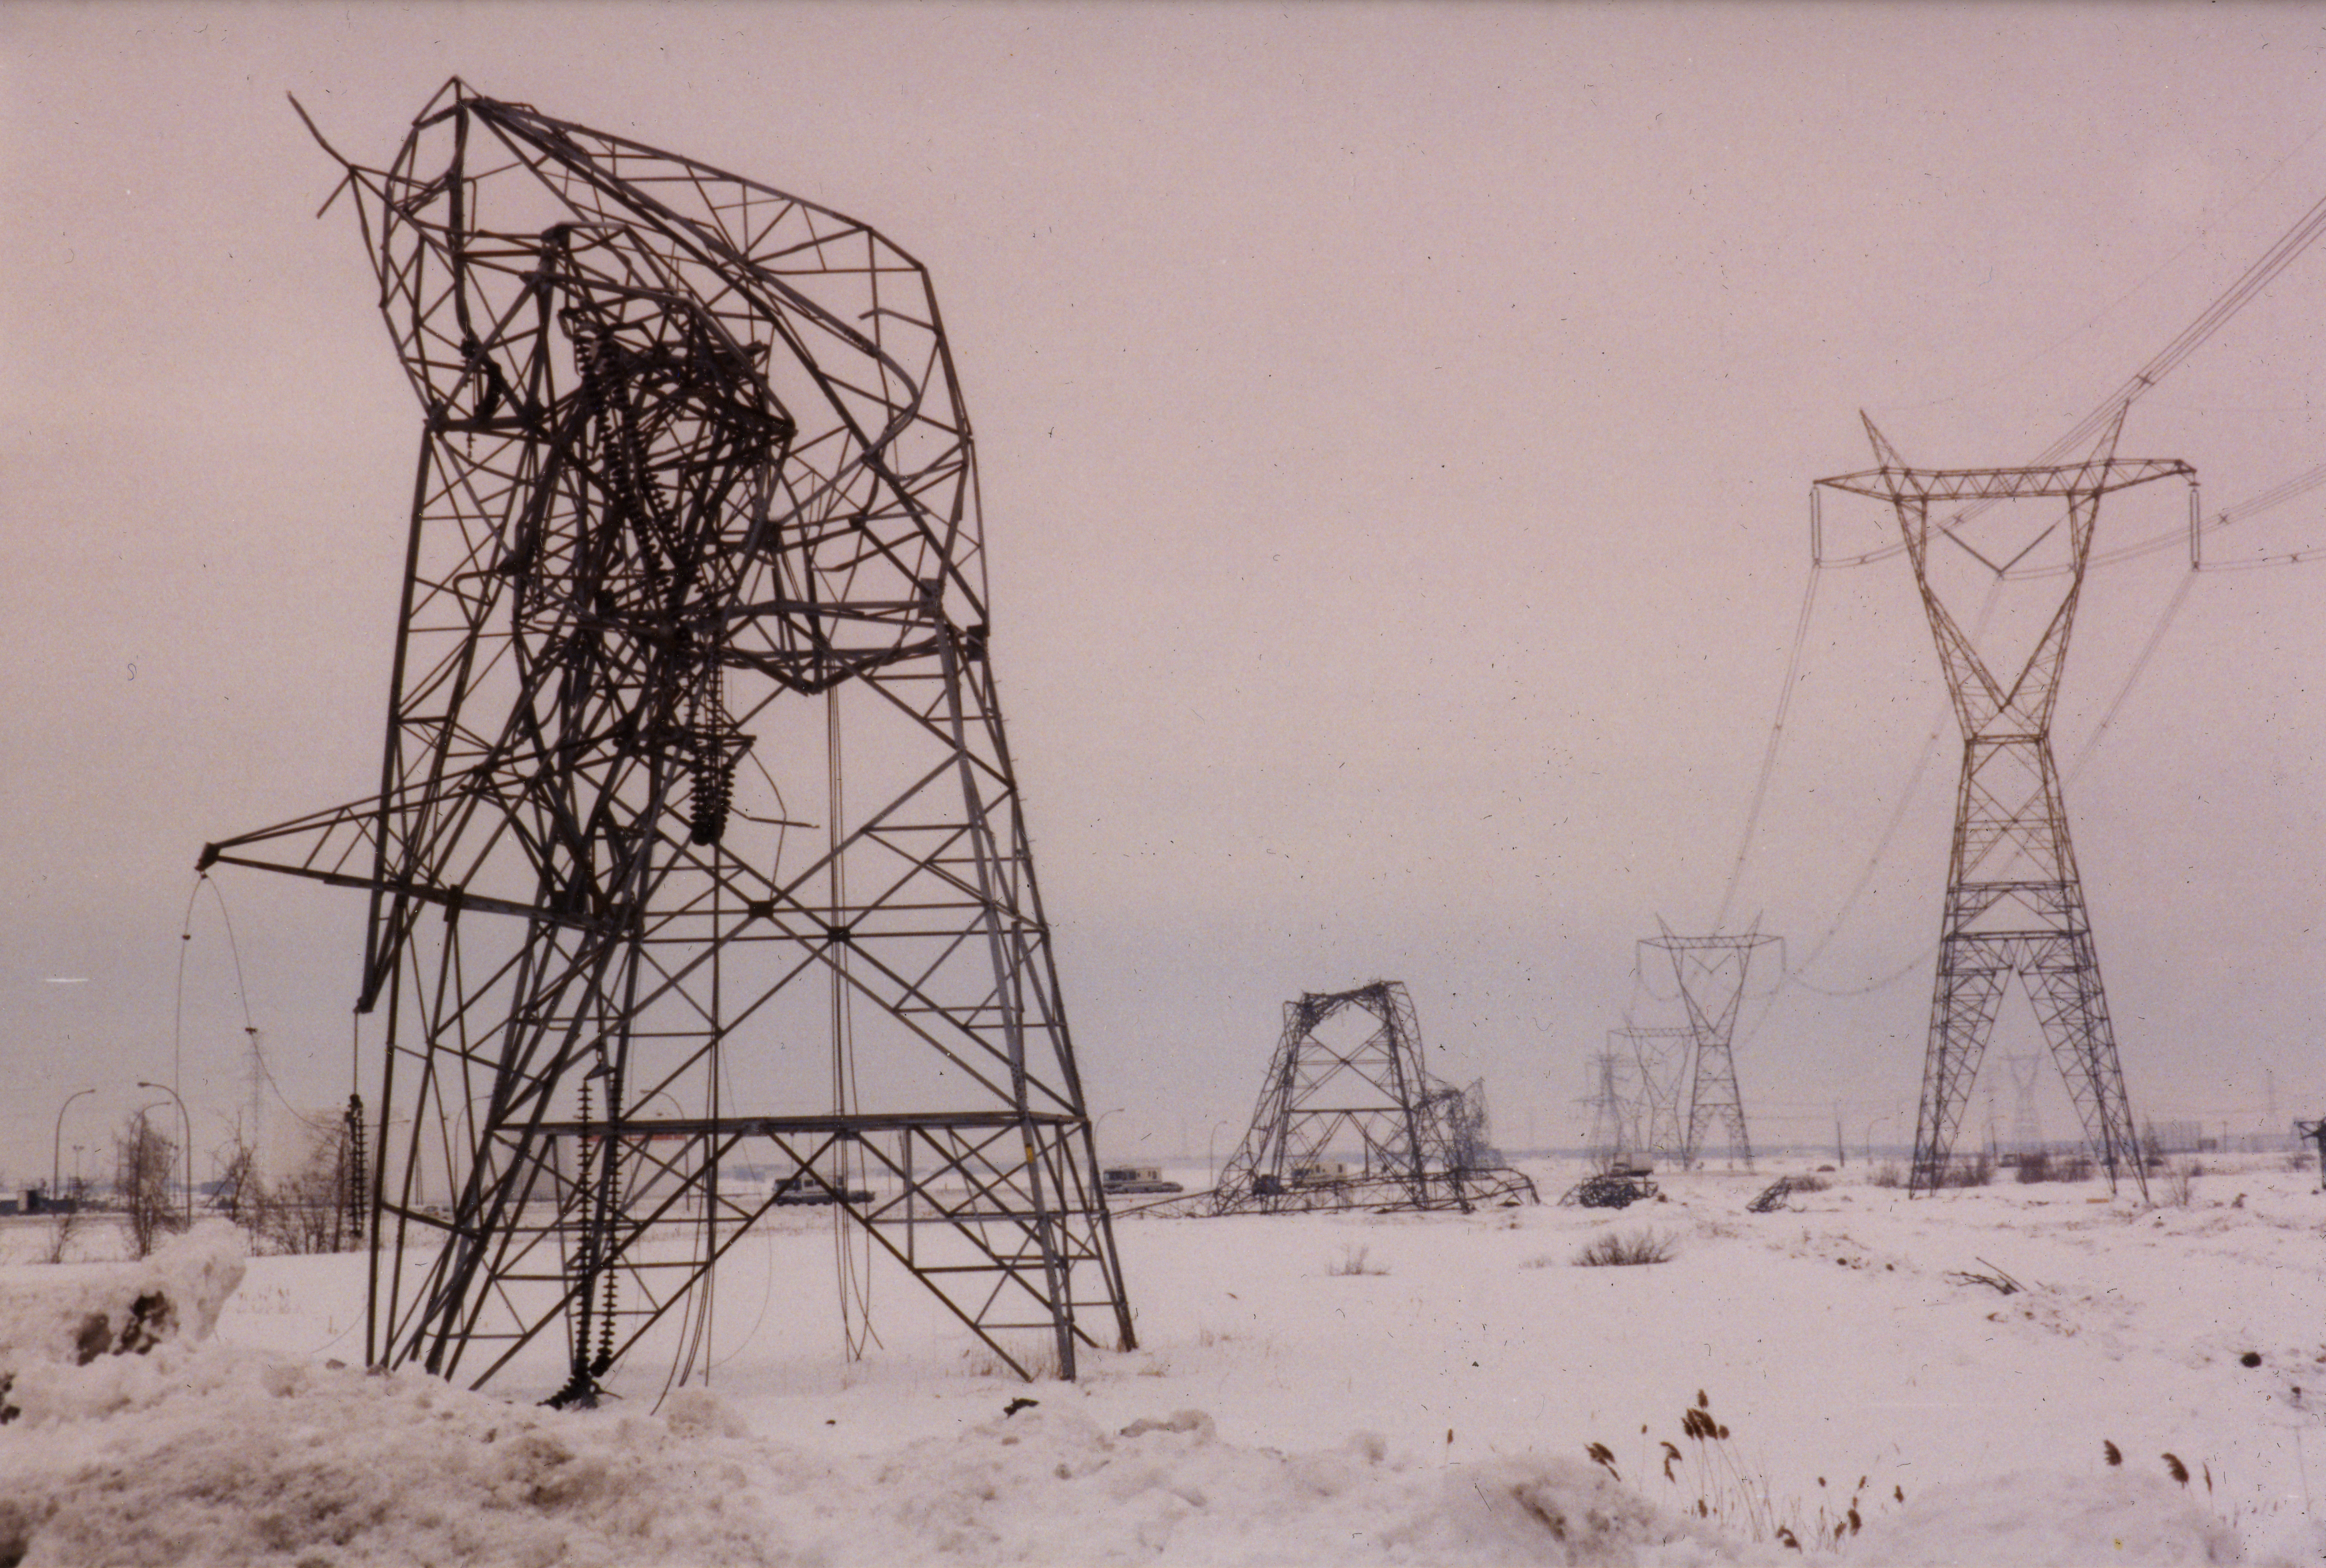 The electrical towers curled in upon themselves under the weight of the ice on their structure.